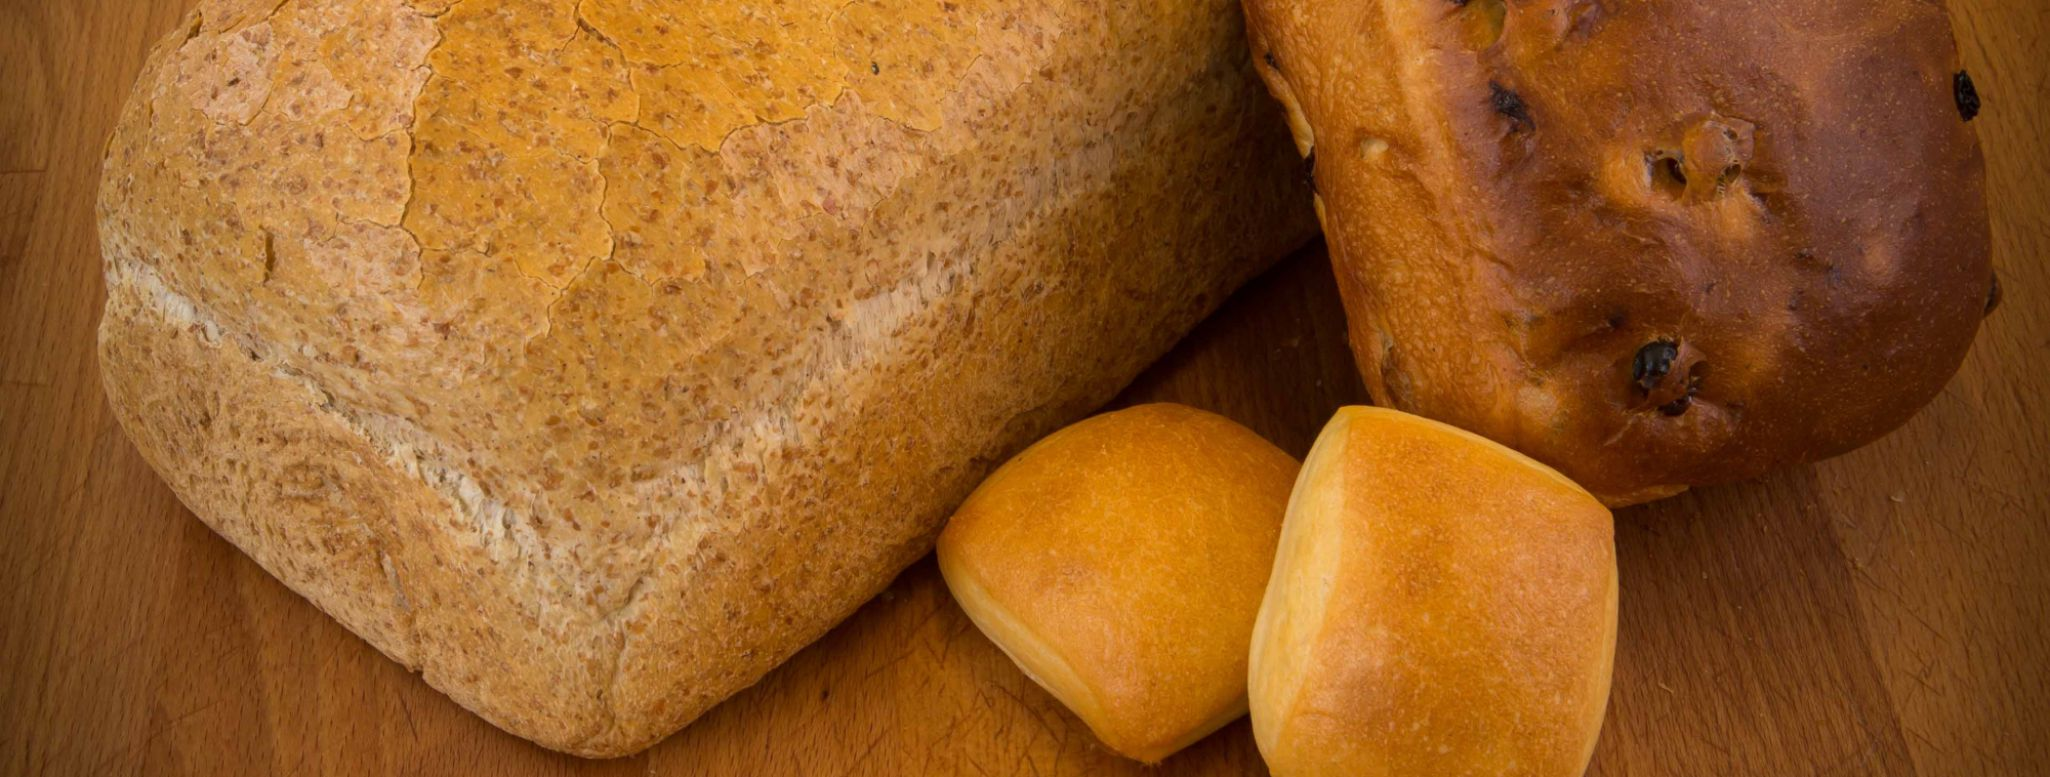 The brewery bakes bread, French rolls called pistolets and raisin bread.